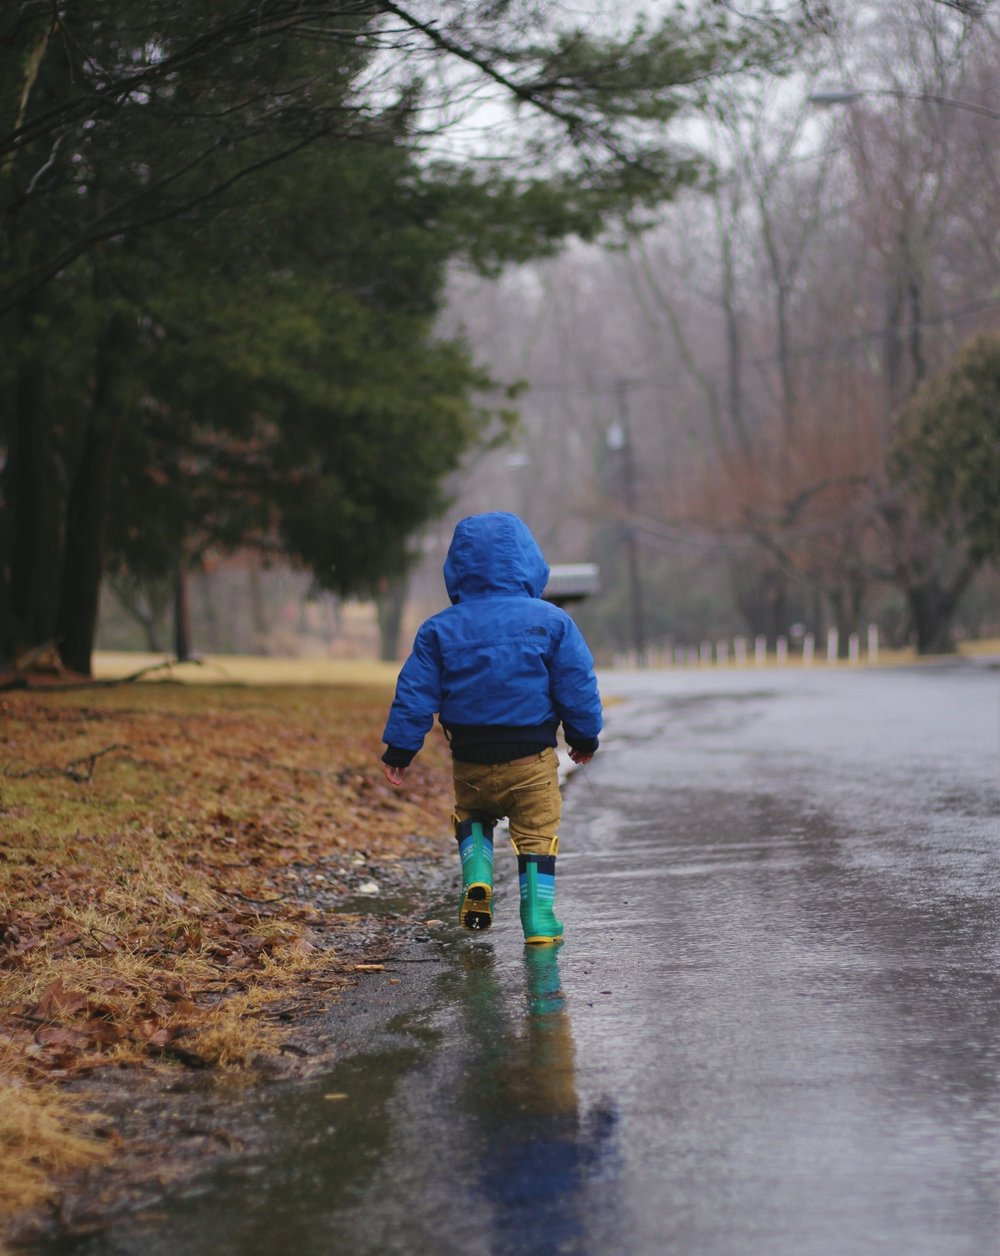 don't forget your rainboots when you are waiting and believing for God to shower his blessings on you and your family. life can bring many disappointments and seasons of drought, but god has blessings coming. as we wait, we pray and believe to see the goodness of god. no matter how bad life is right now, we have a god who is on our side. sickness, addiction, mental illness, marital problems, financial problems, even death, cannot separate us from God's love and plan for us. dawn r. ward, the faith to flourish, shares how to trust in the lord as we wait.